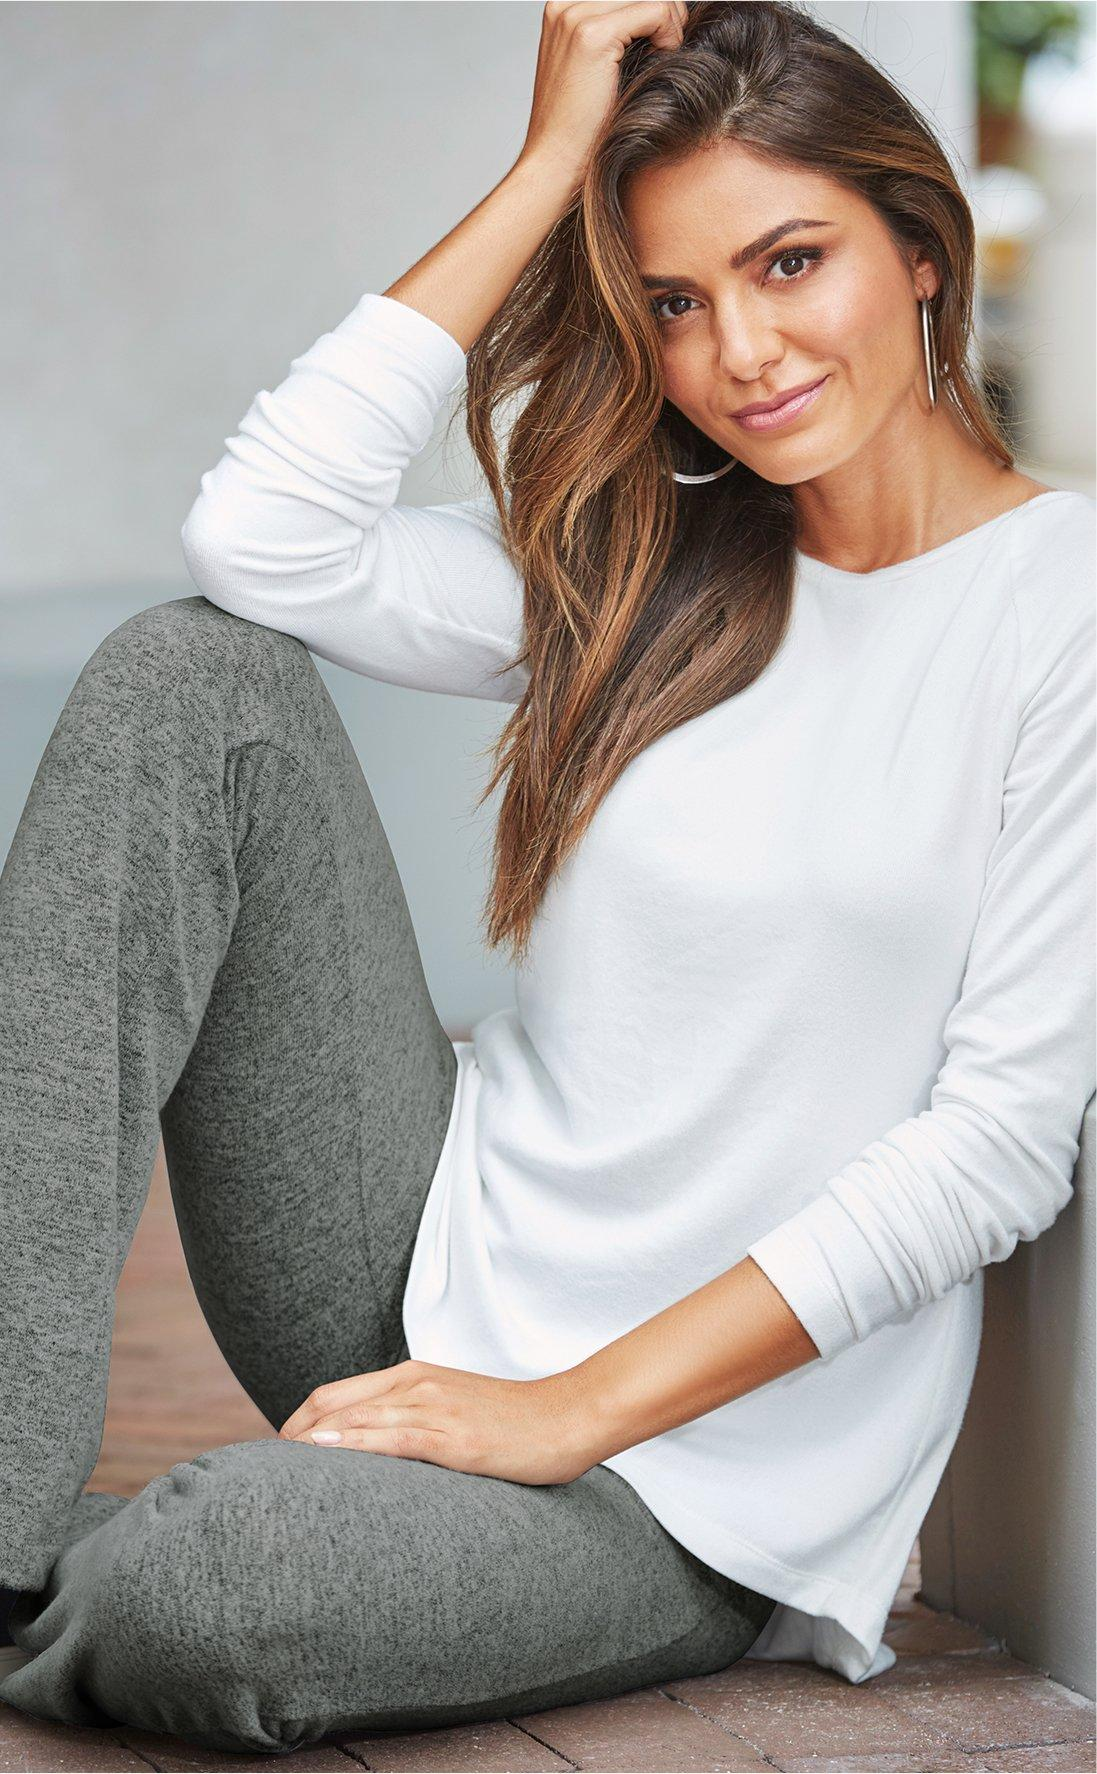 model wearing white sweater over gray yoga pants.